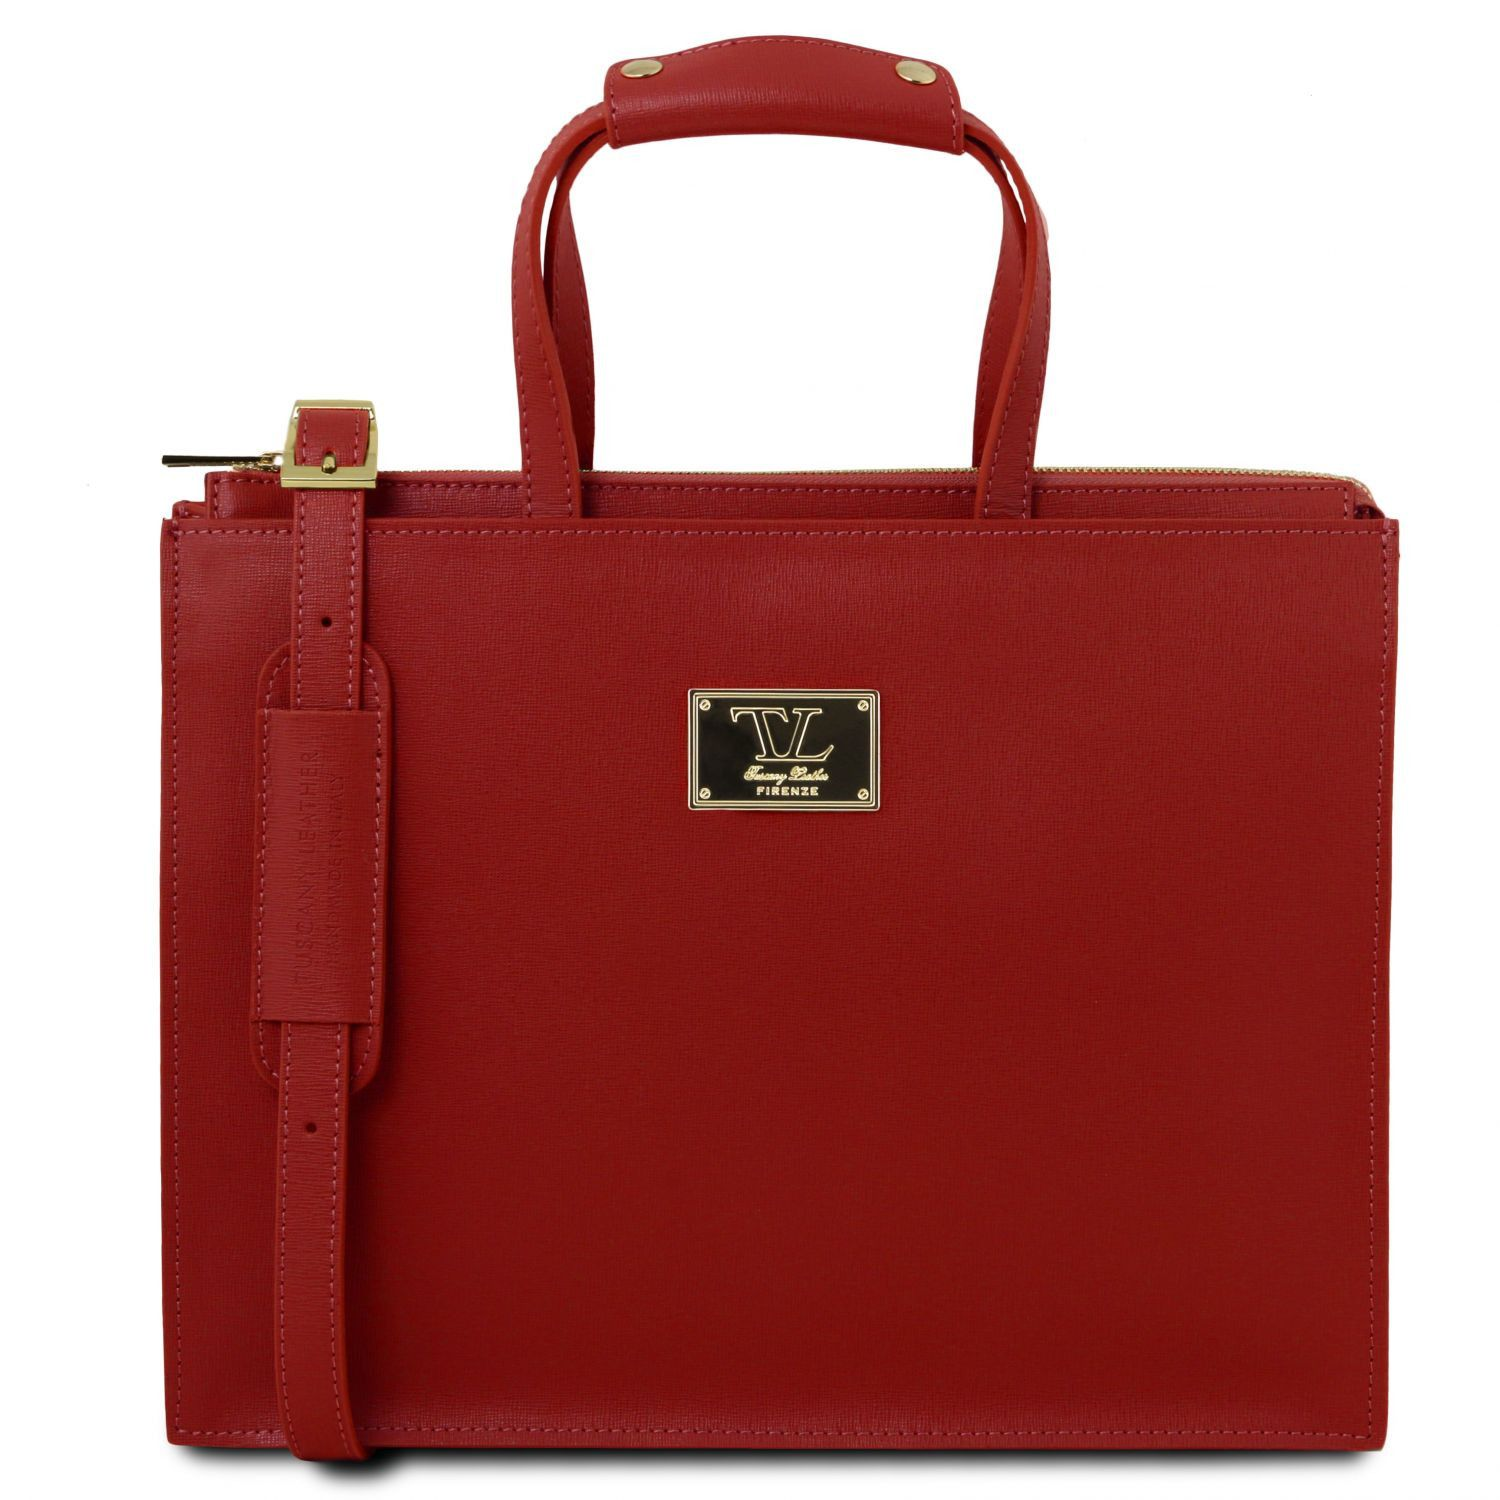 Palermo - Saffiano Leather briefcase 3 compartments for women (TL141369) - Leather briefcases | DILUSSOBAGS